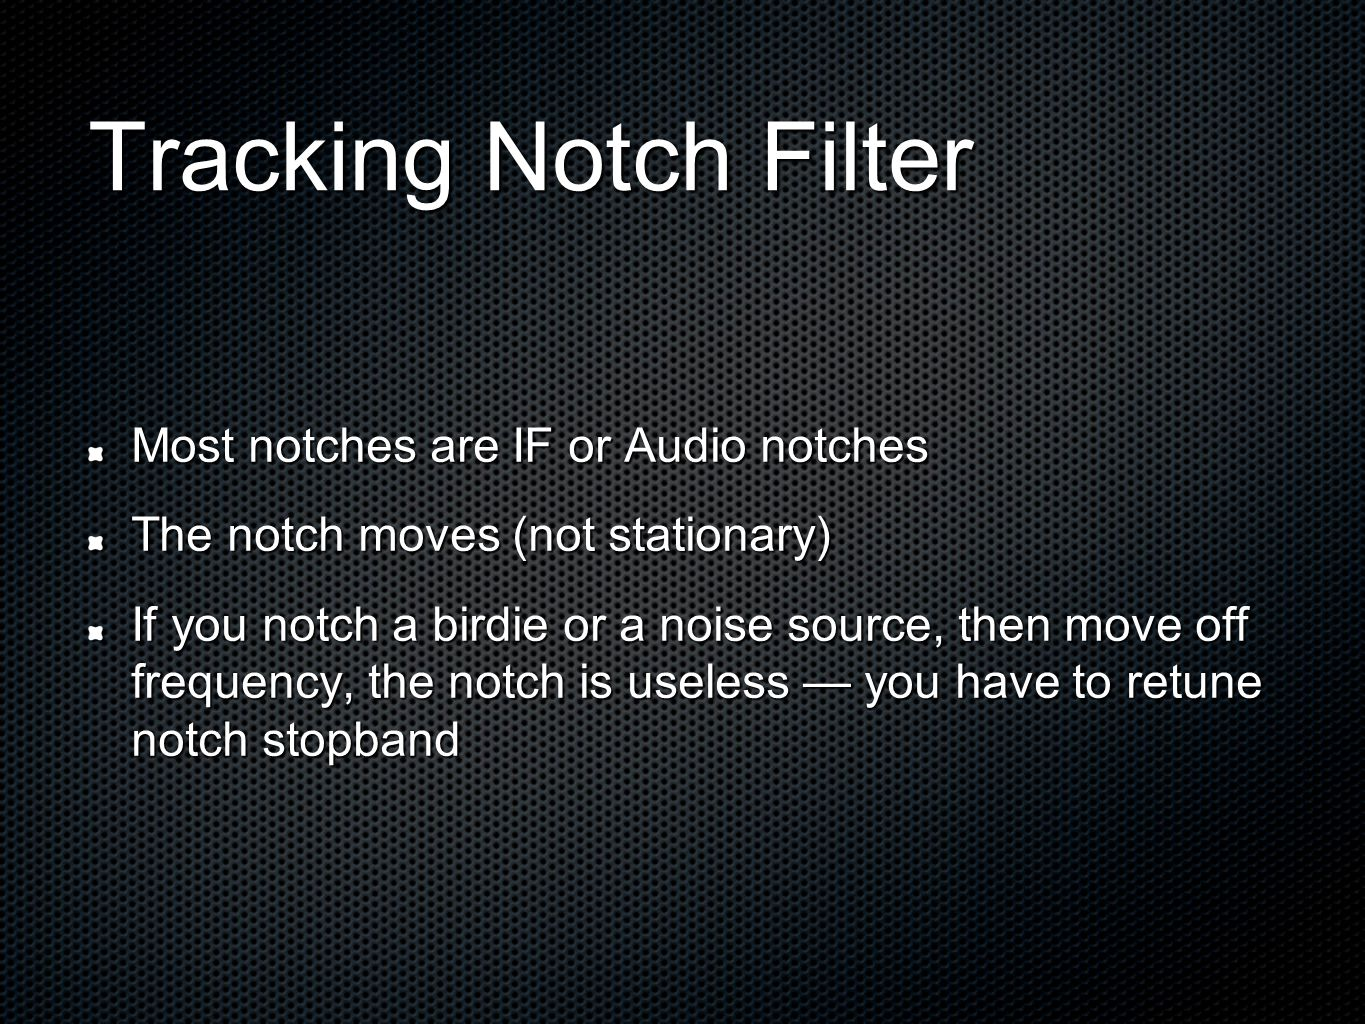 Tracking Notch Filter Most notches are IF or Audio notches The notch moves (not stationary) If you notch a birdie or a noise source, then move off frequency, the notch is useless — you have to retune notch stopband